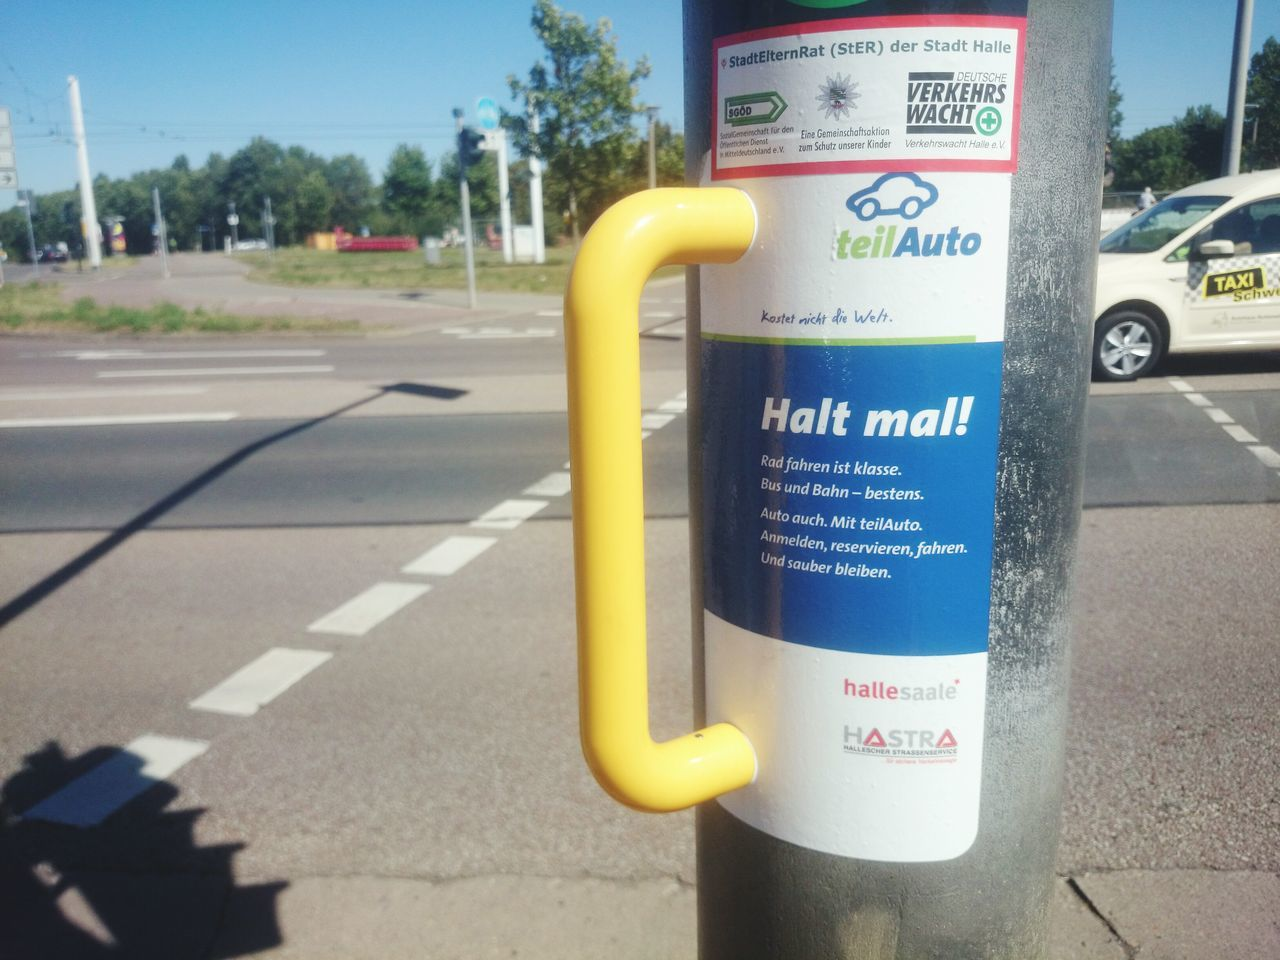 Geniale Werbung. Halt mal kurz ... City Halle (Saale) Hallesaalegermany Hallesaale Germany, Car Street Streetphotography Pole Sign Close-up Message Outdoors Day Western Script Communication Text Yellow Warning Sign Guidance Information Pole Sign Close-up Sidewalk